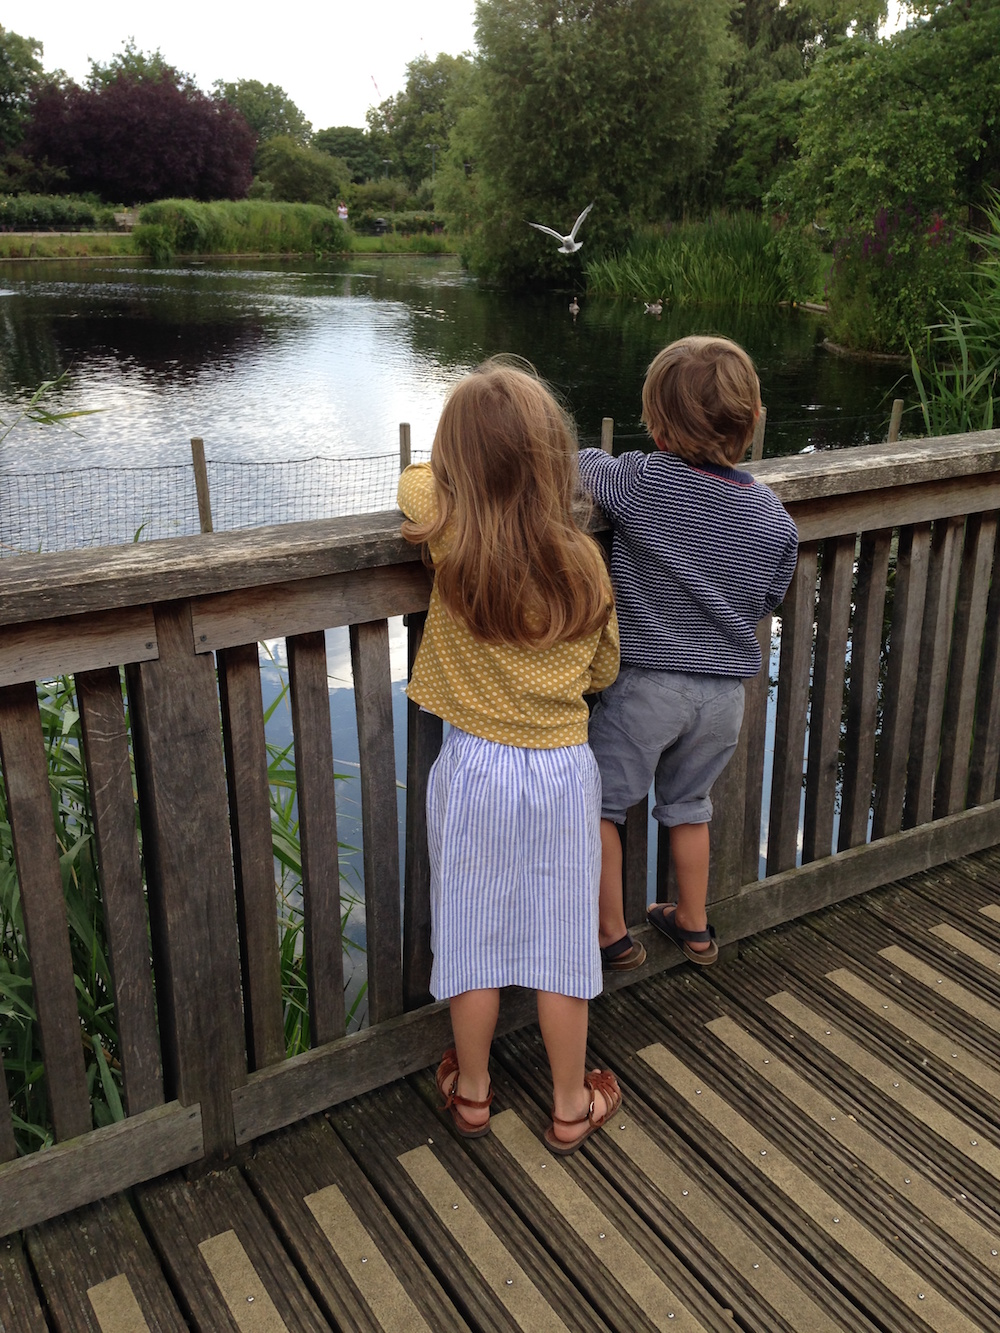 Kids at Queen Mary's Gardens lake